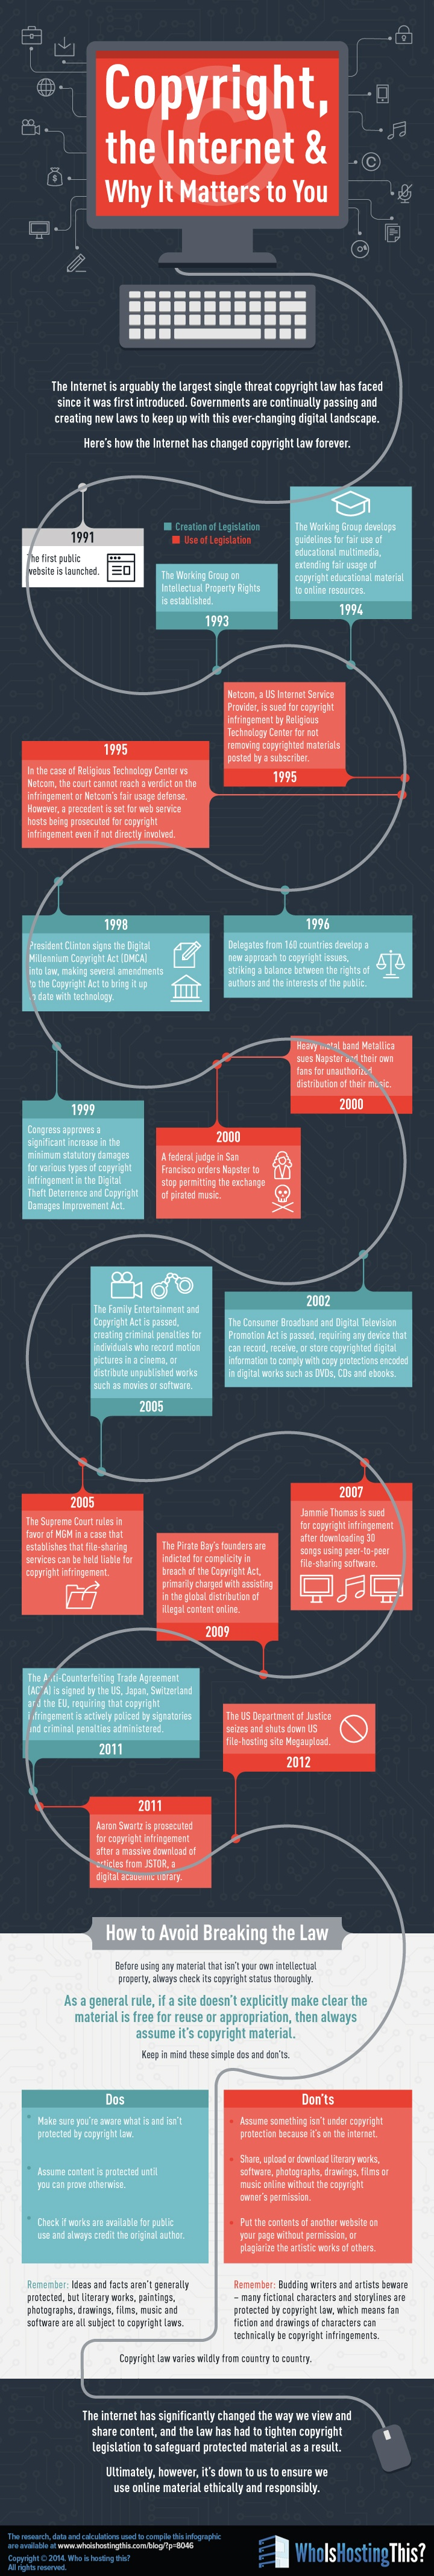 How the internet affects copyright - infographic